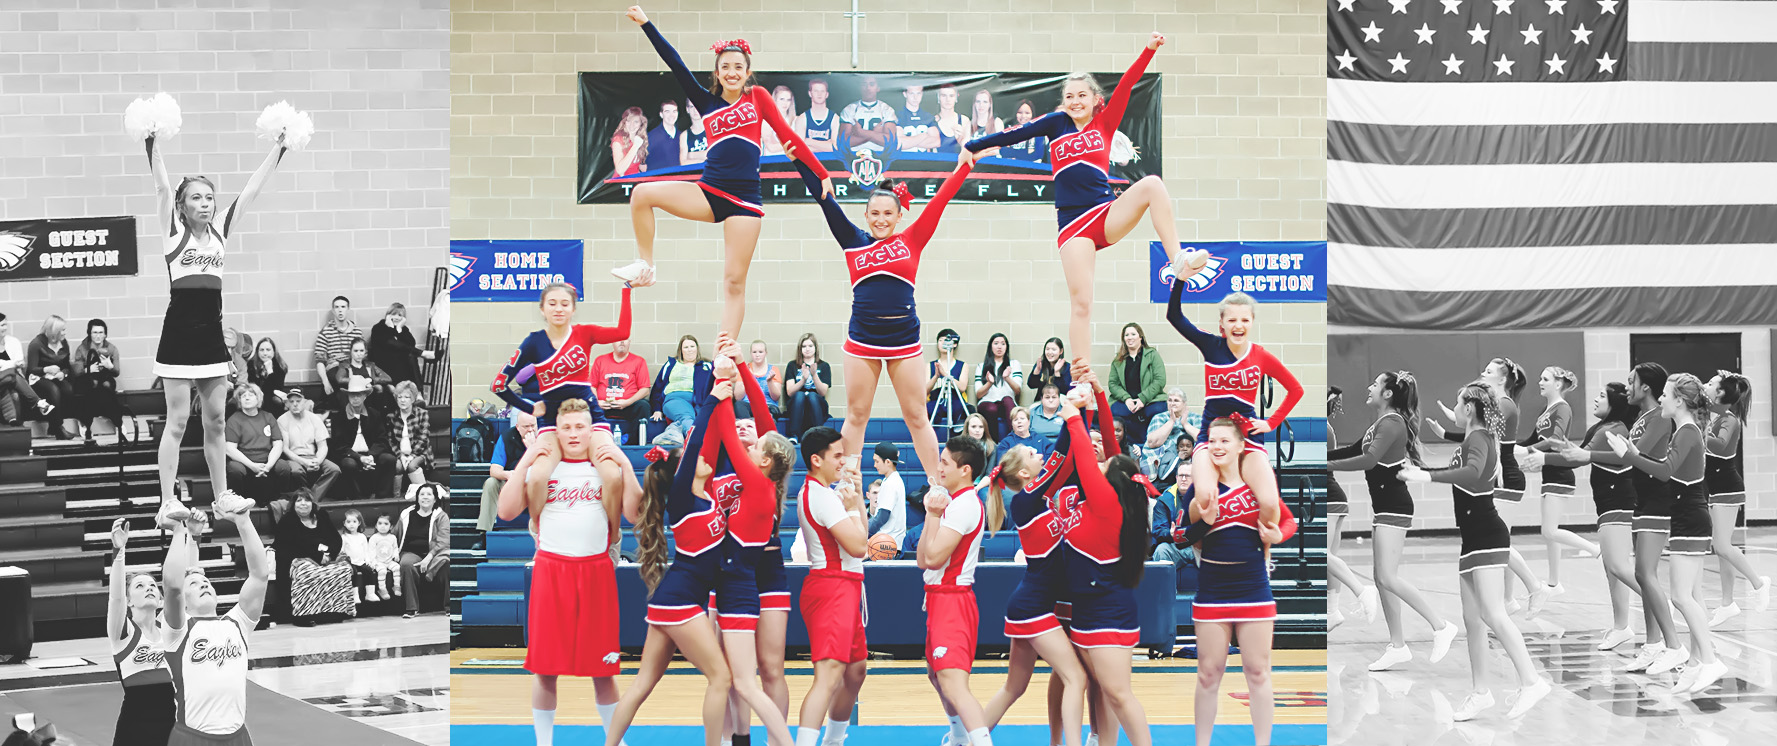 Cheercollage